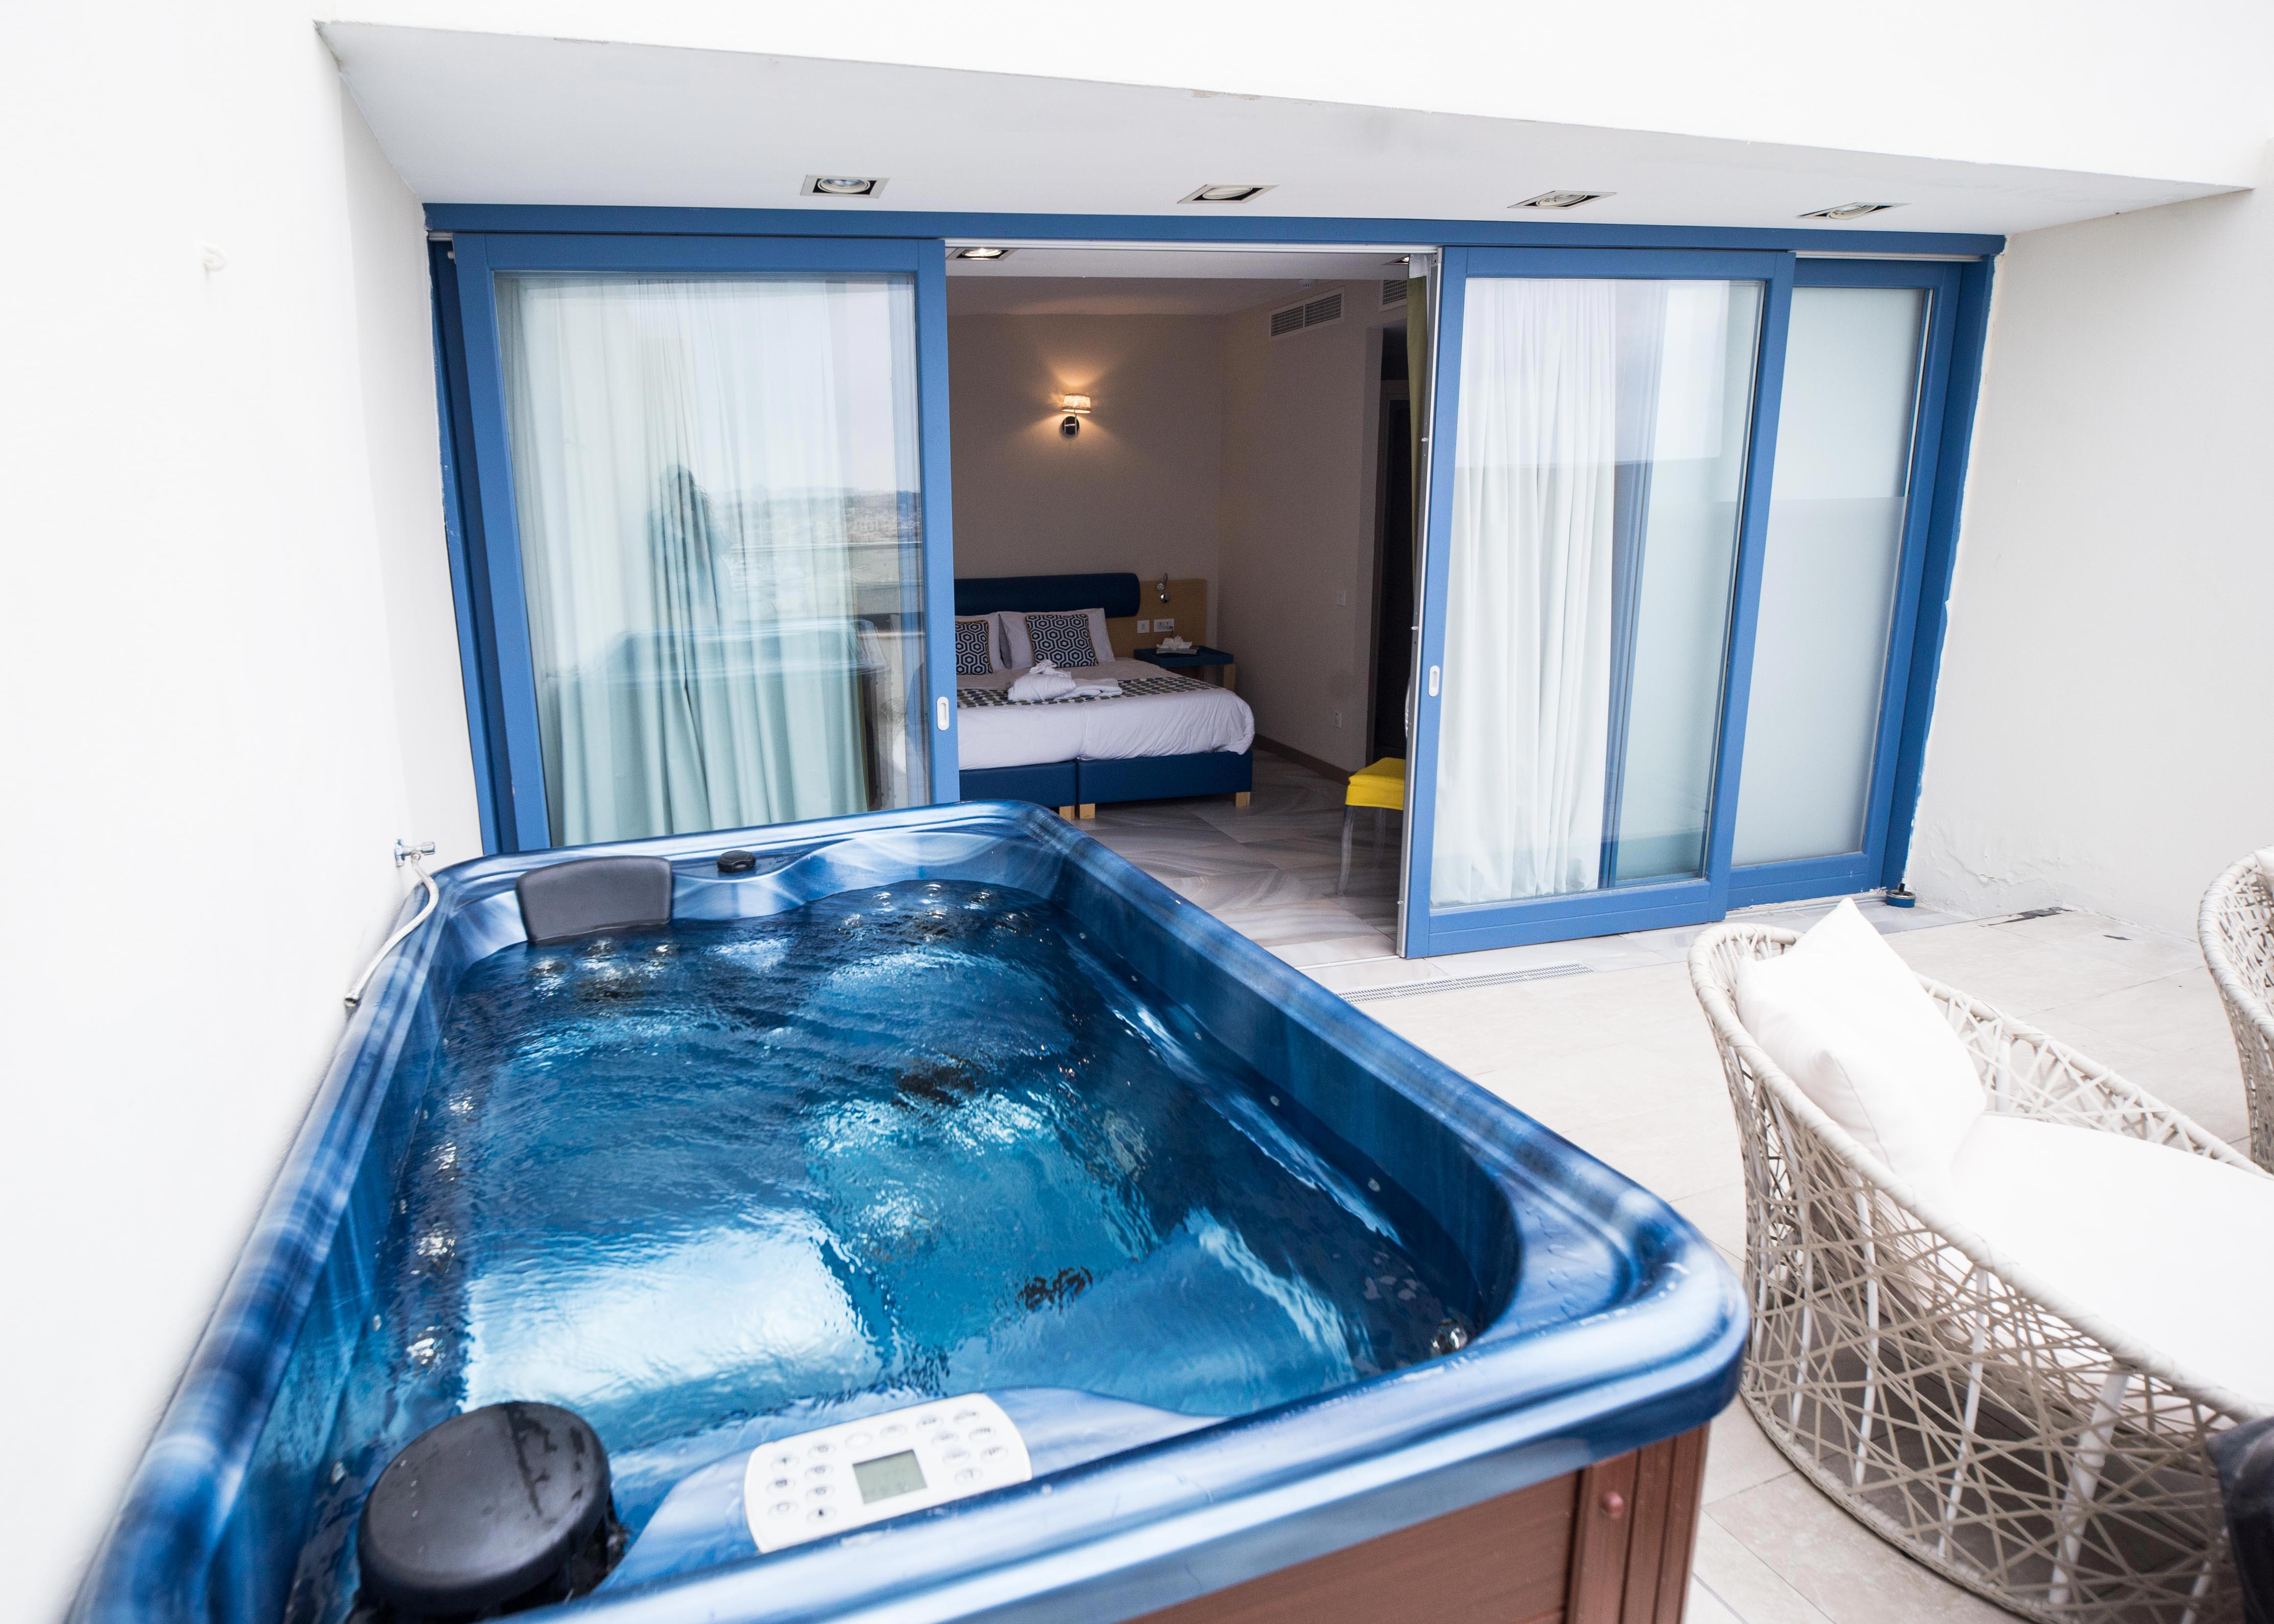 Jacuzzi spa tub, best hotel with the view of Malta, The British Suites